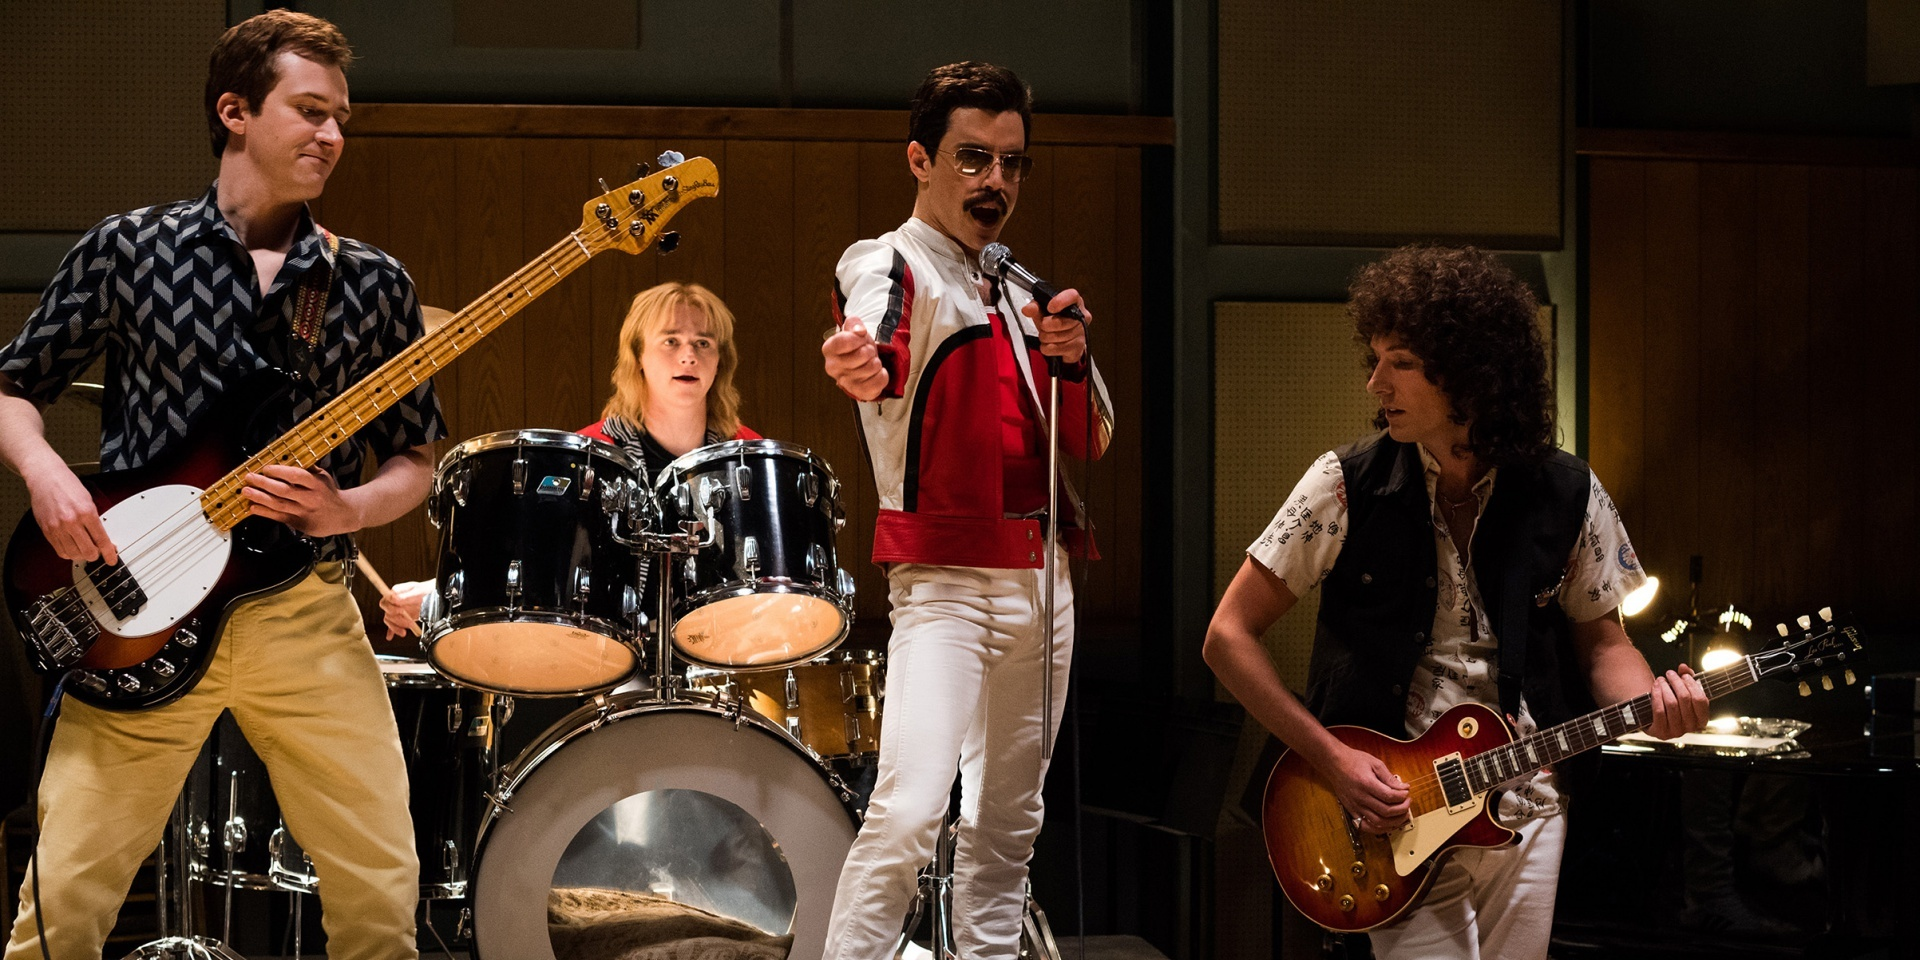 Bohemian Rhapsody triumphs at Golden Globes 2019